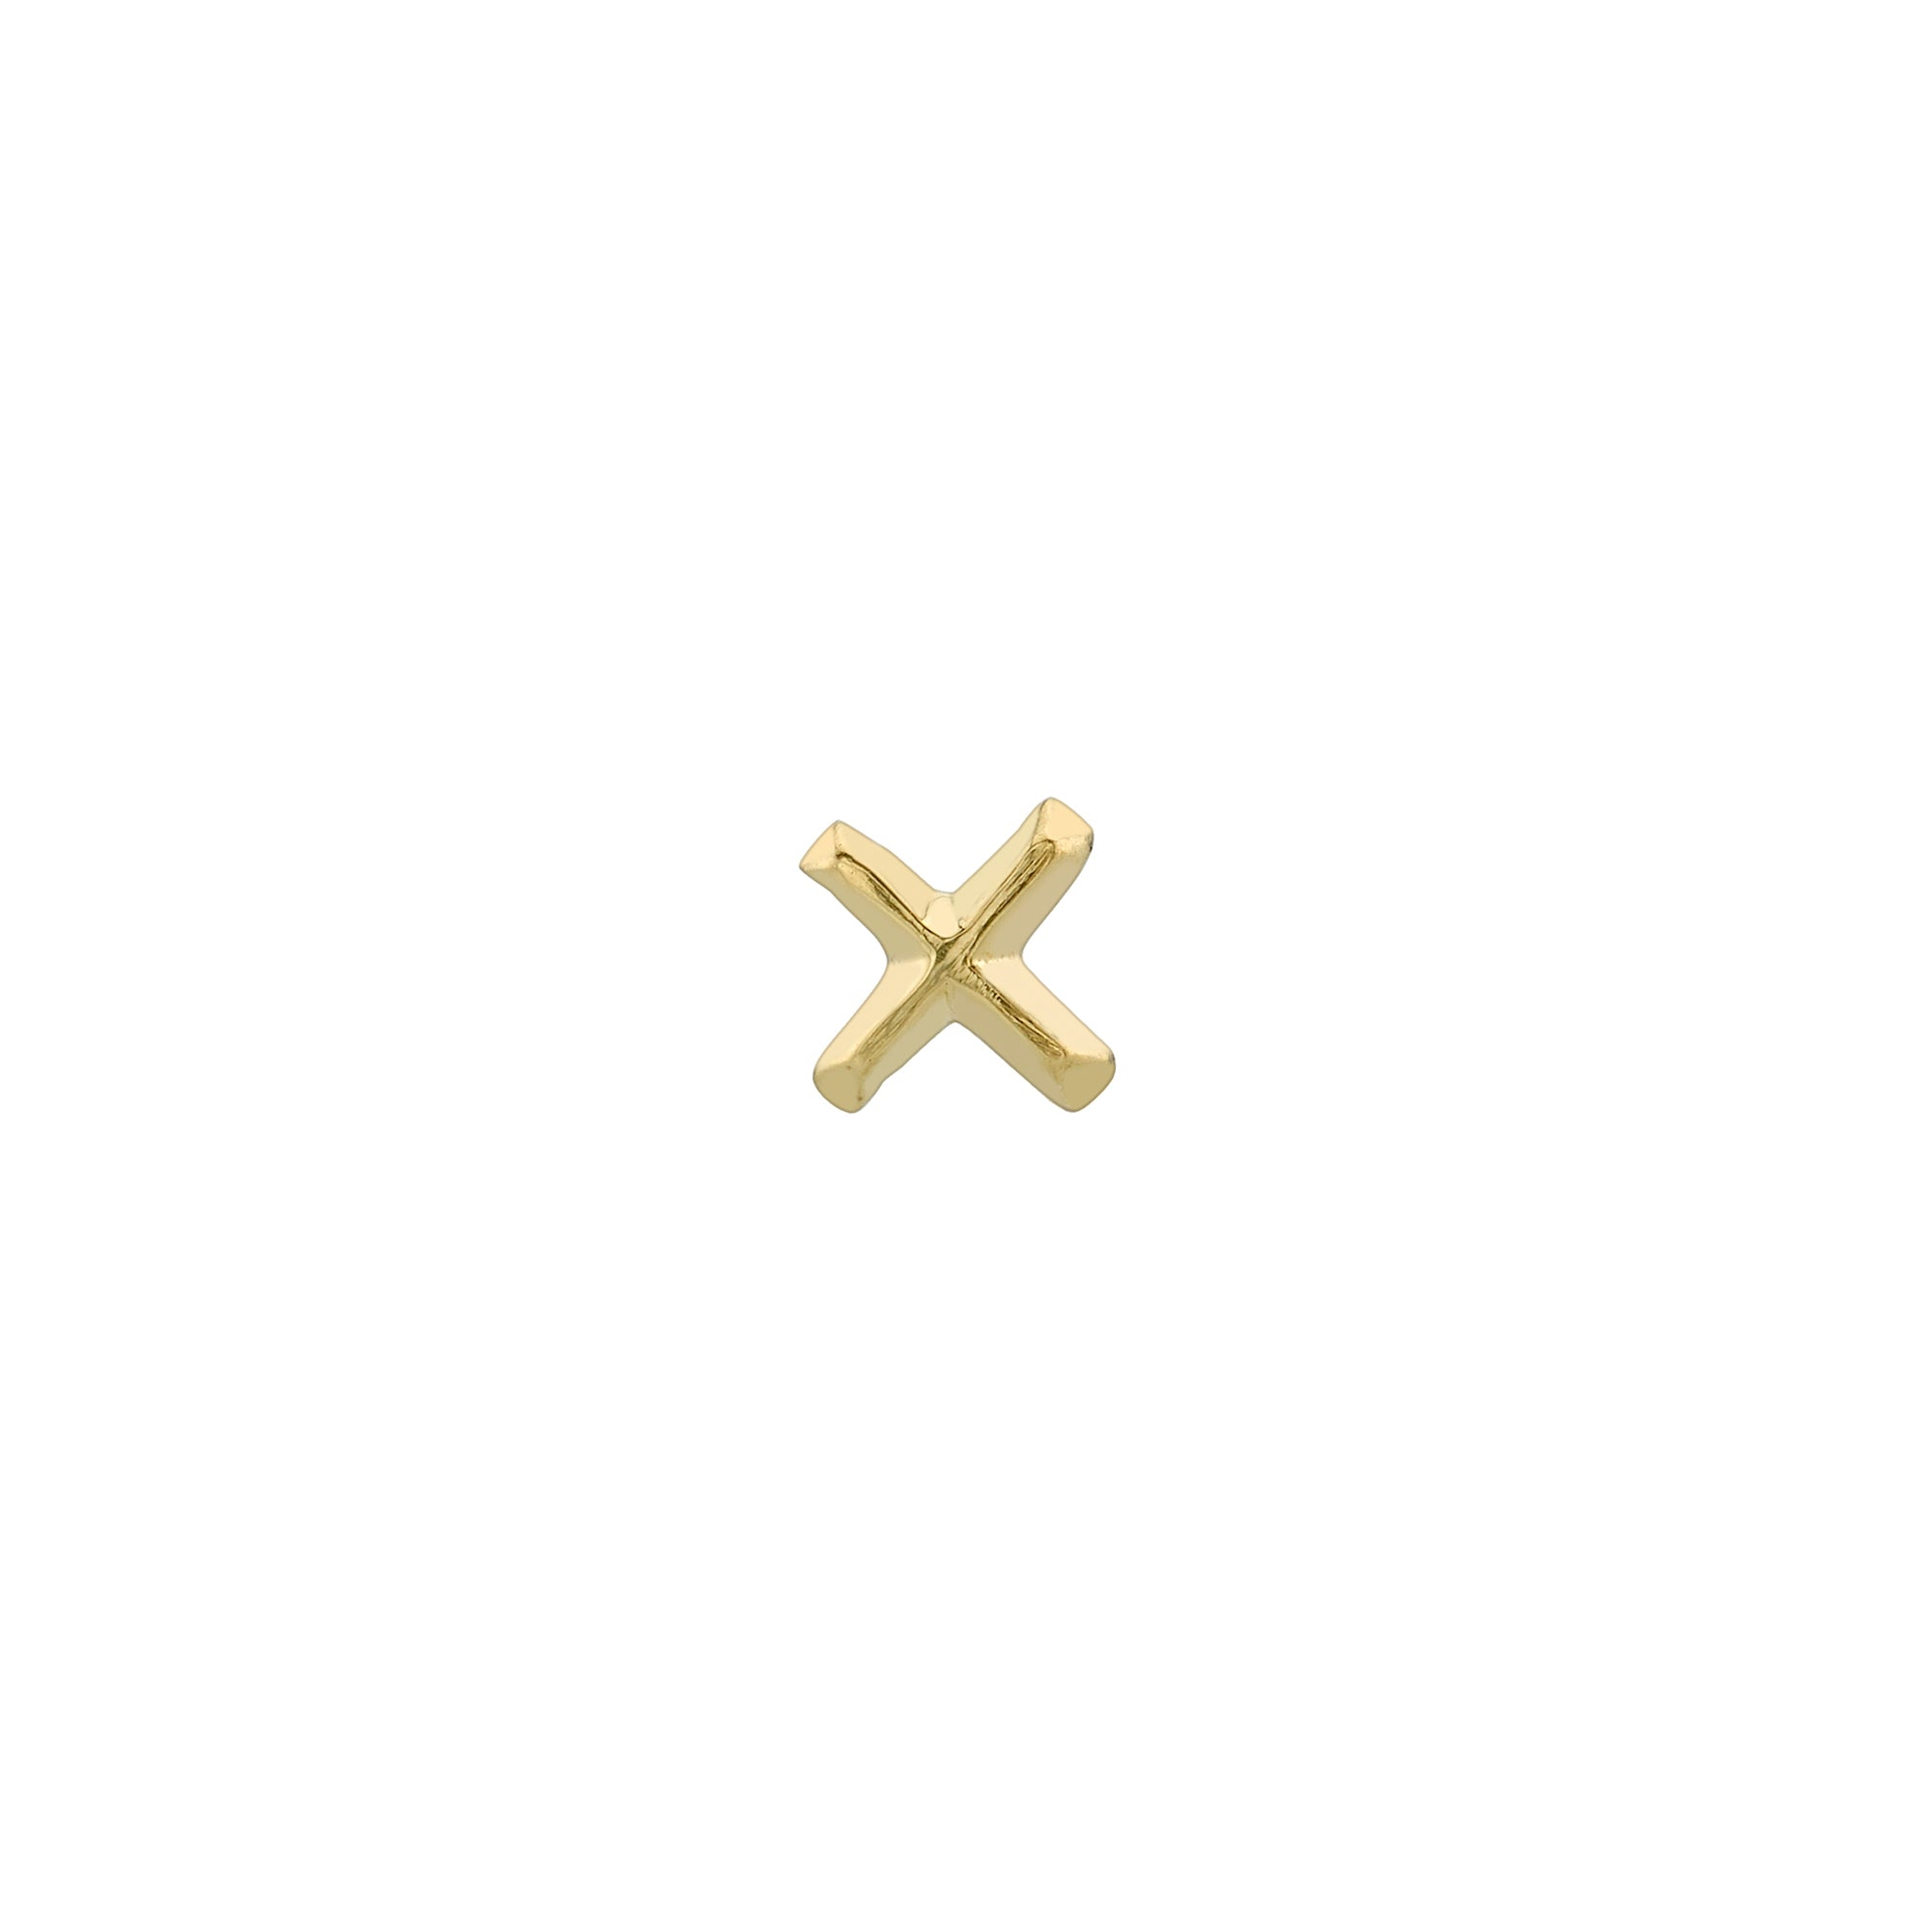 X Mini Stud by Lizzie Mandler for Broken English Jewelry